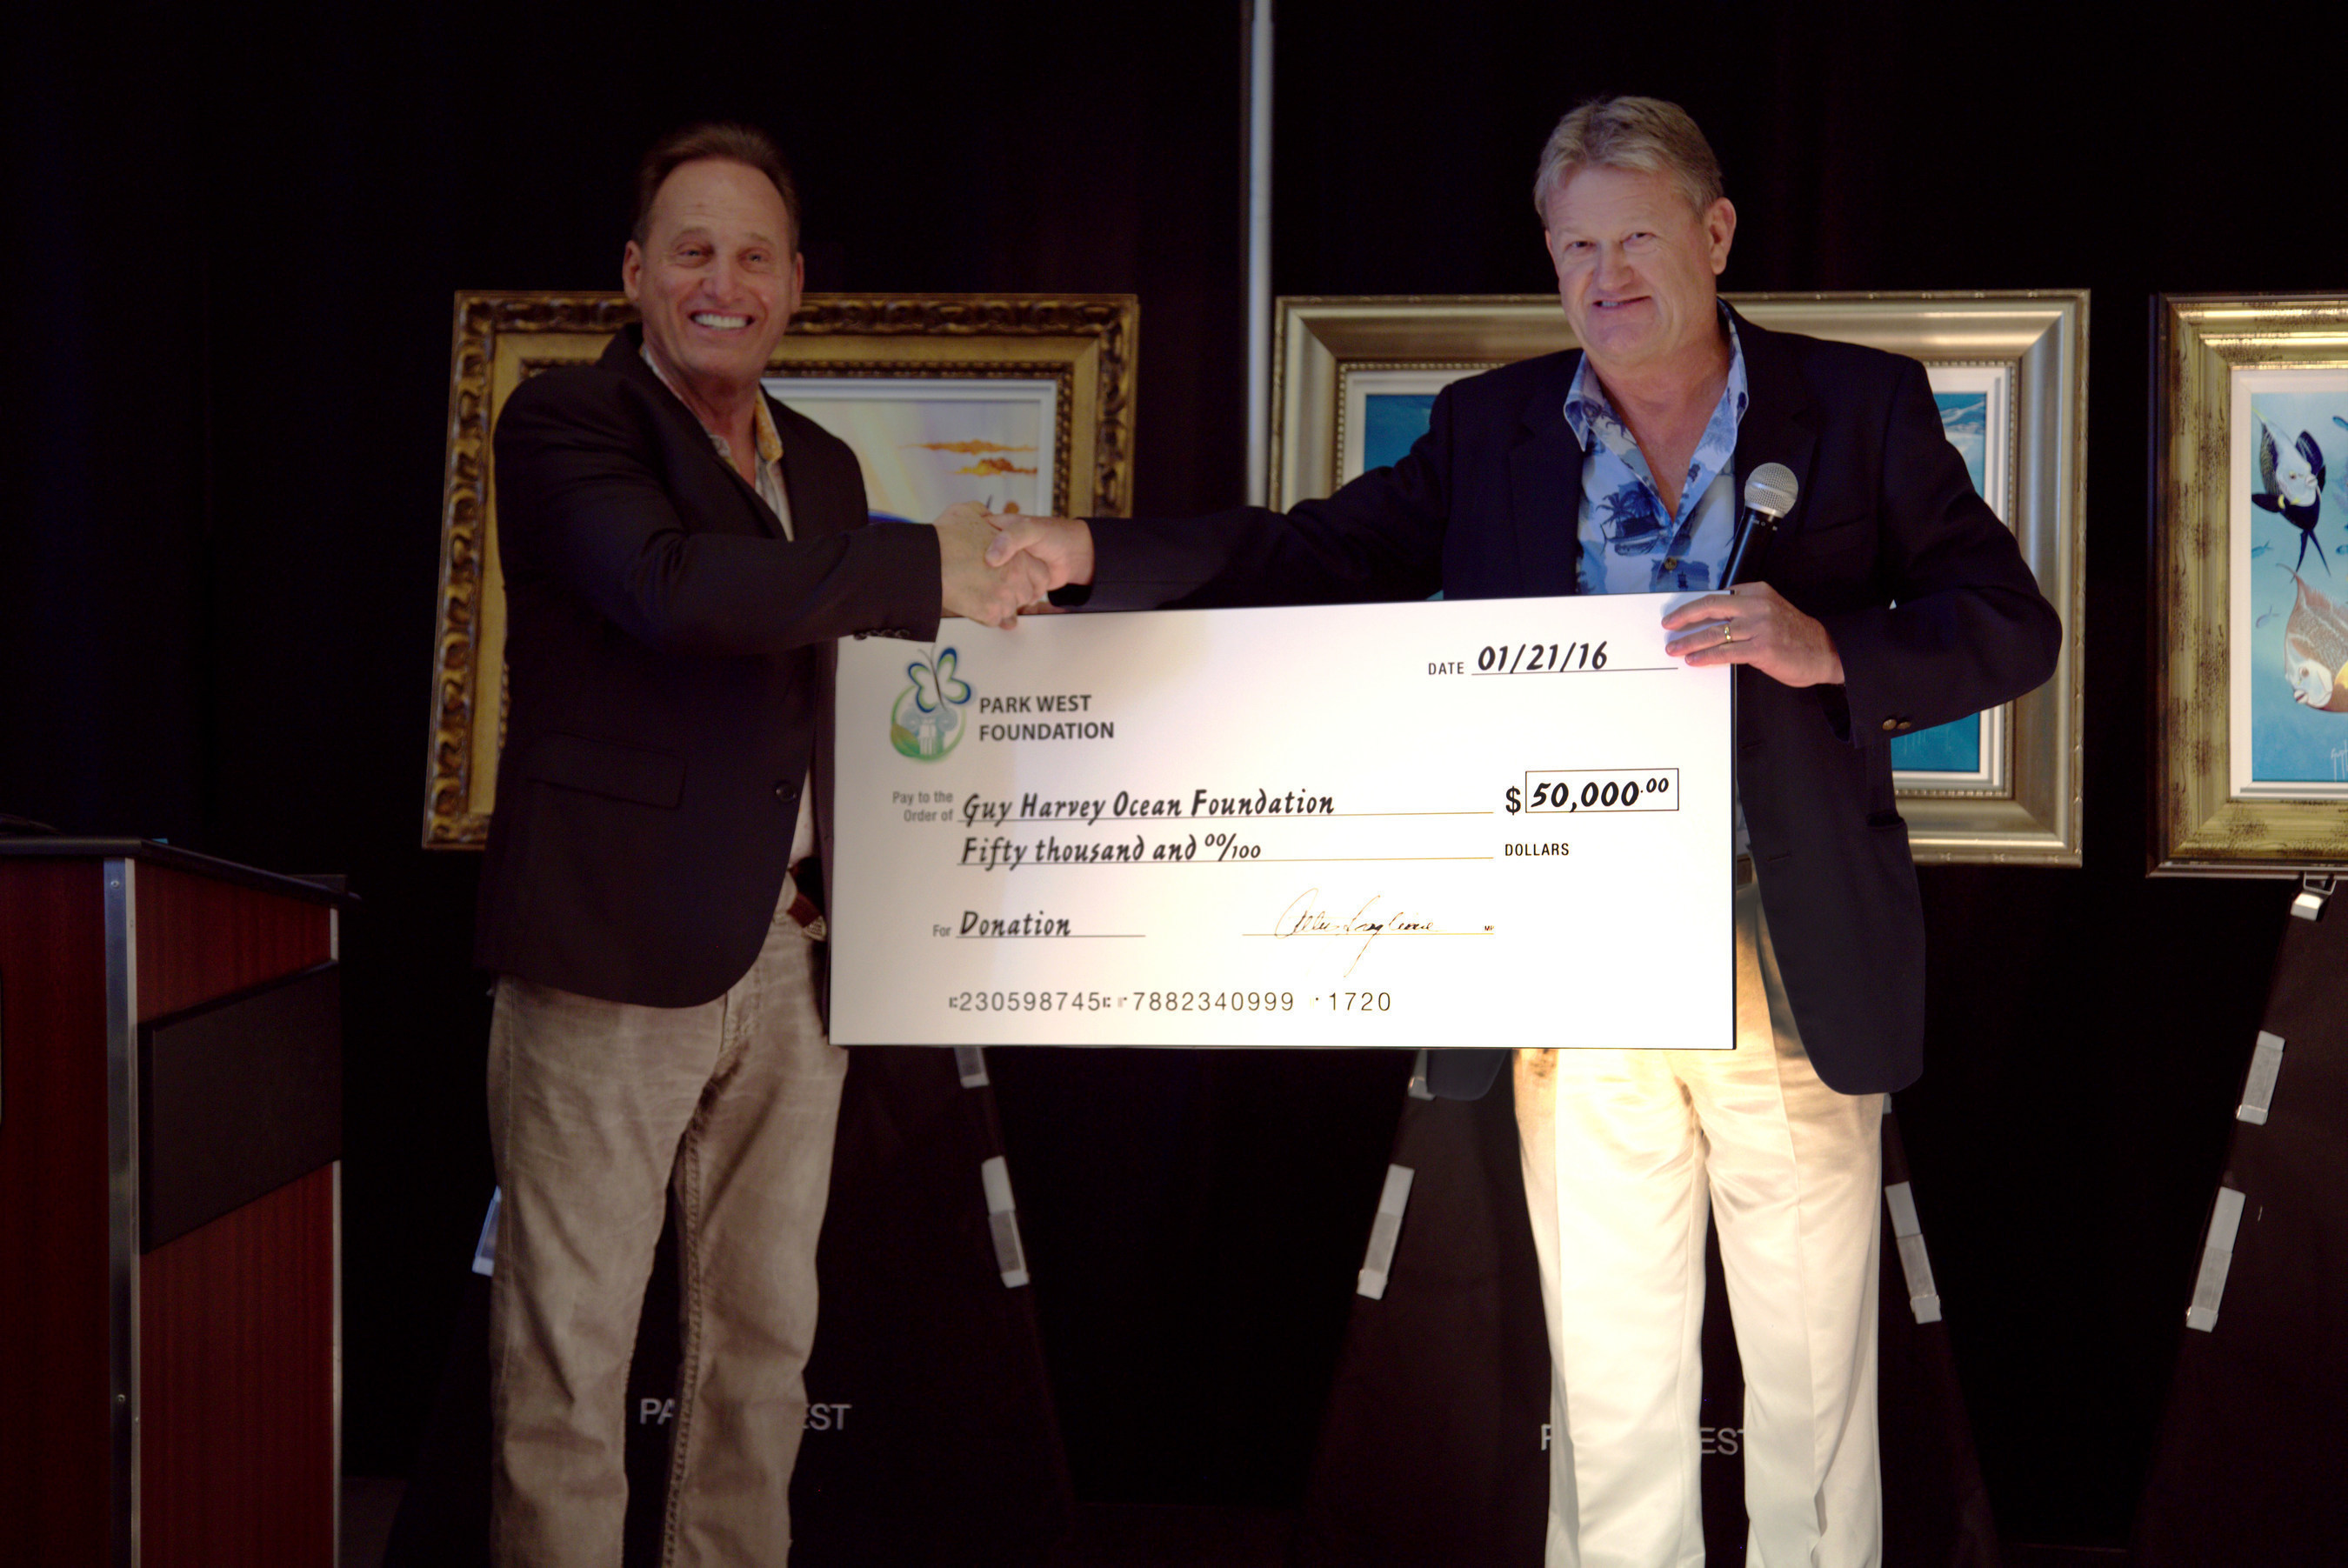 Park West Gallery Founder and CEO Albert Scaglione presents artist Guy Harvey with a $50,000 check to benefit his Guy Harvey Ocean Foundation. (Credit: Park West Gallery)